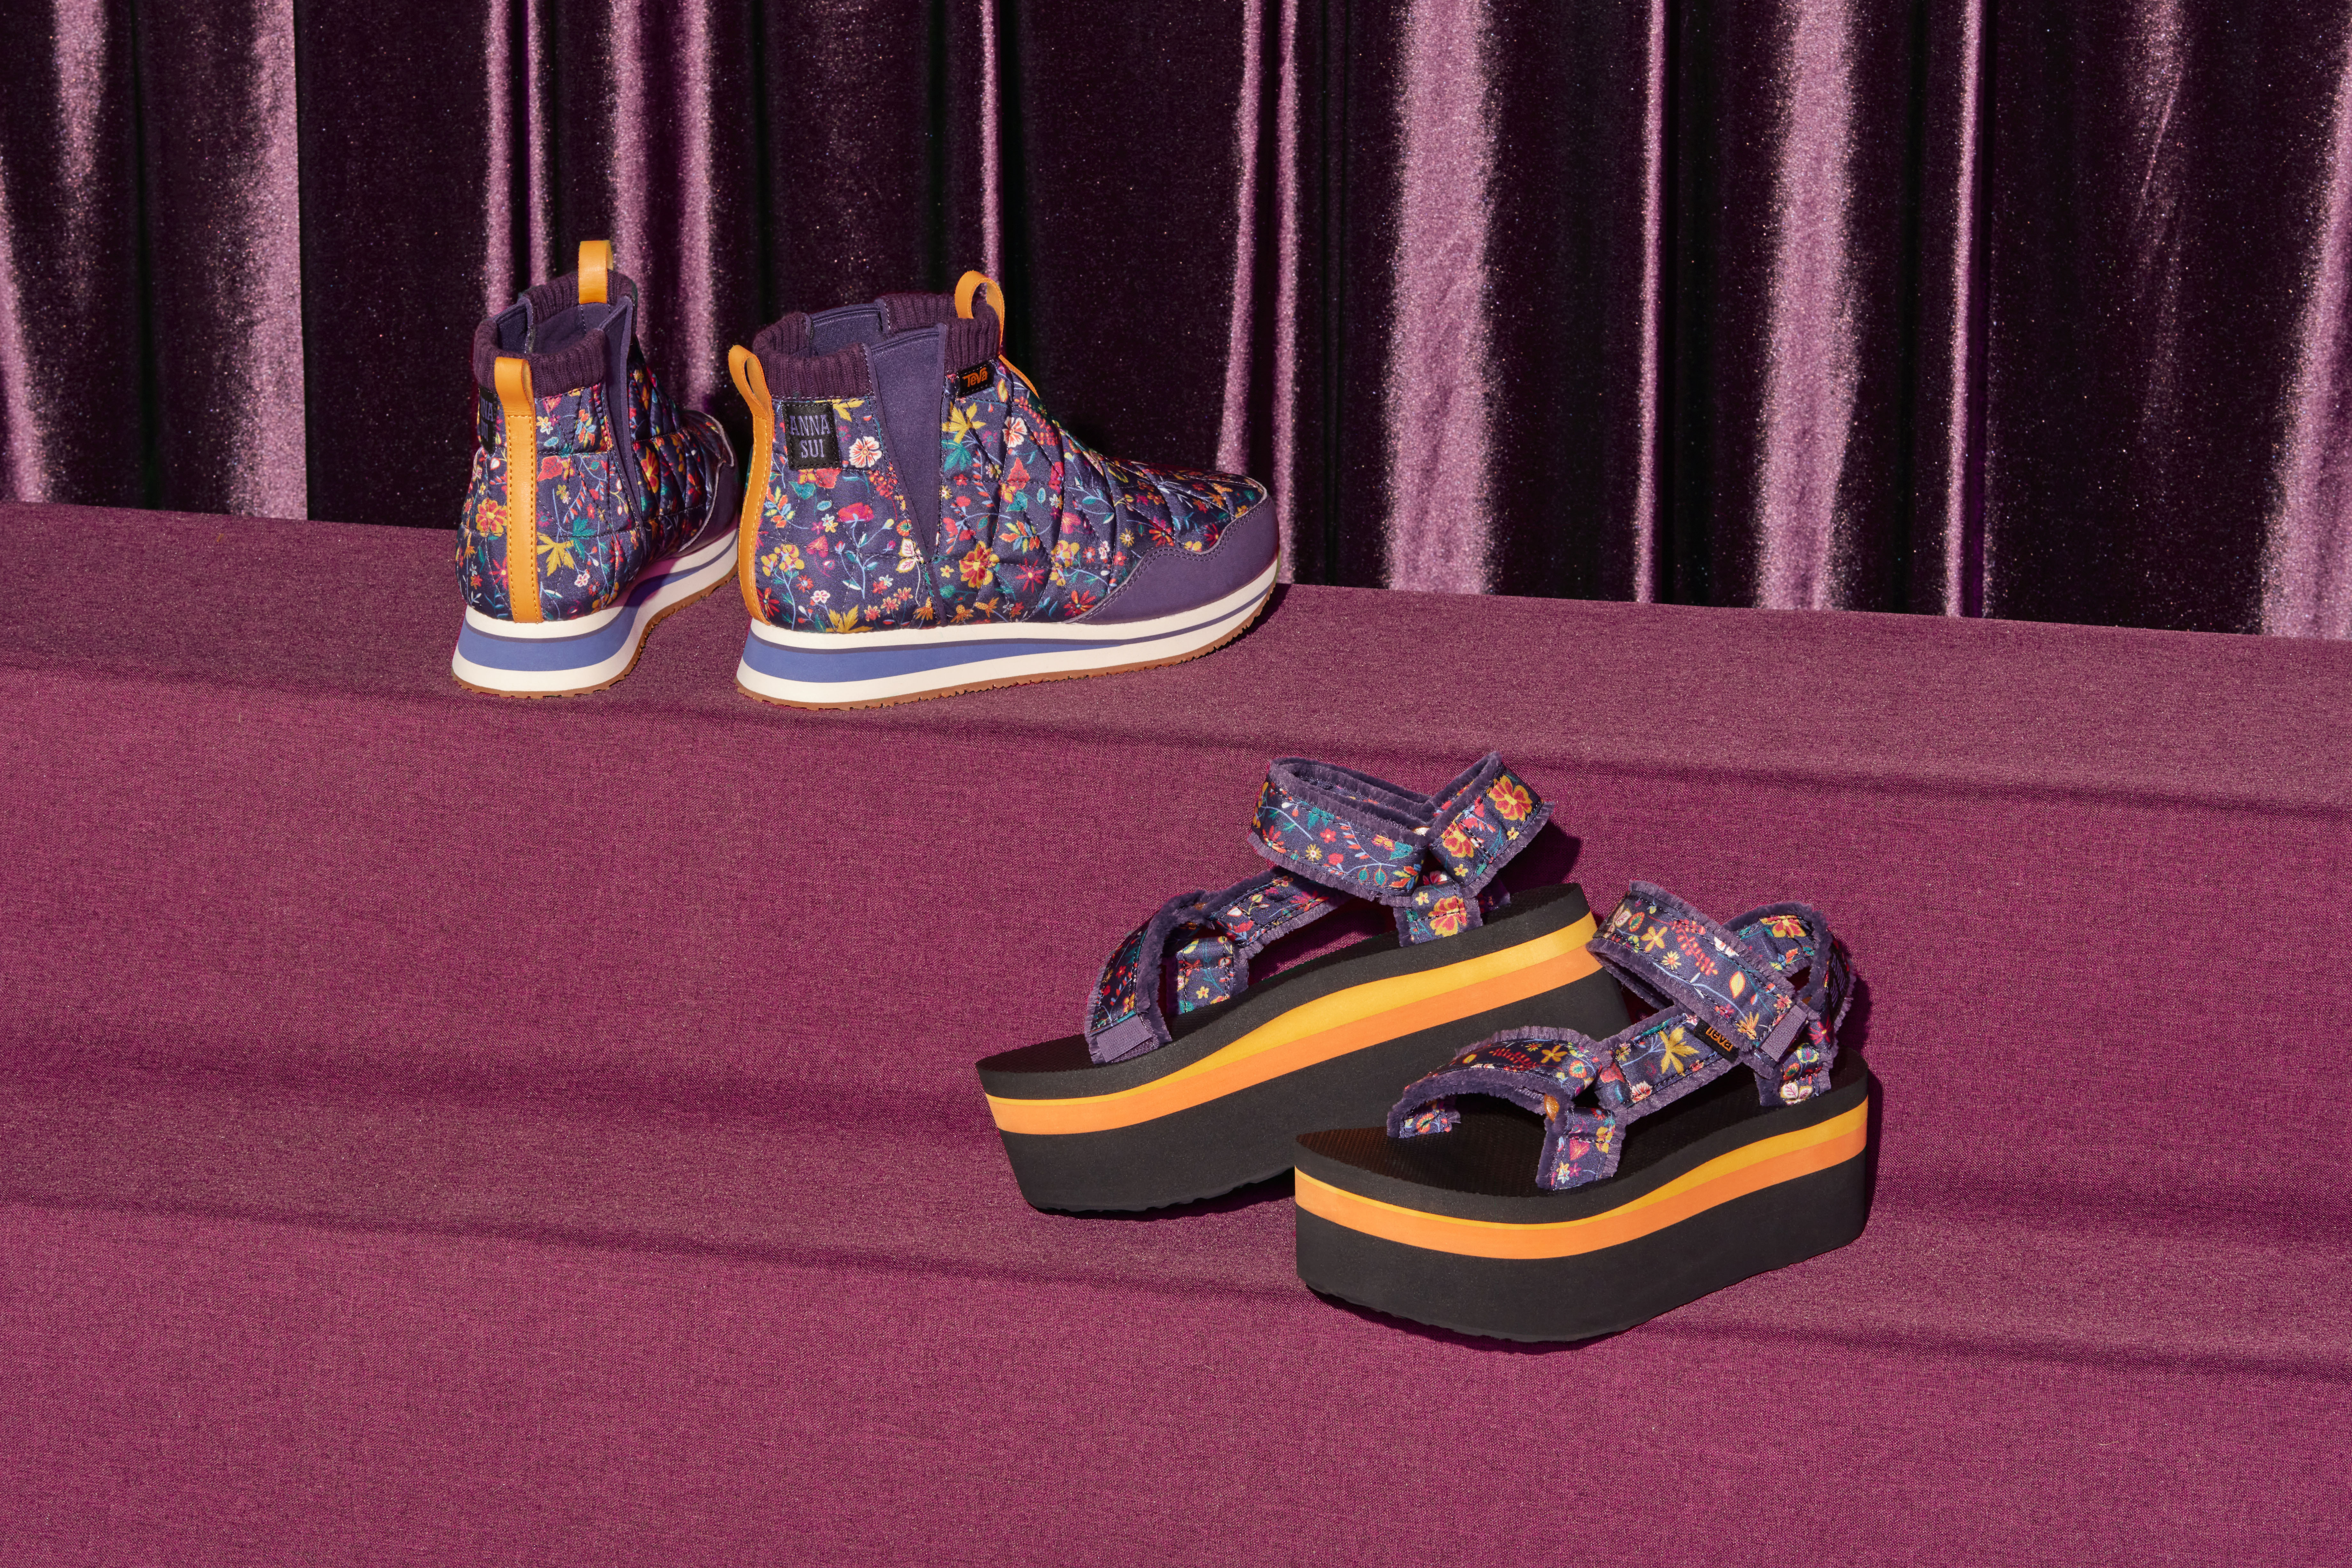 The Ember Mid Anna and the Flatform Universal Anna for the Anna Sui x Teva collection.